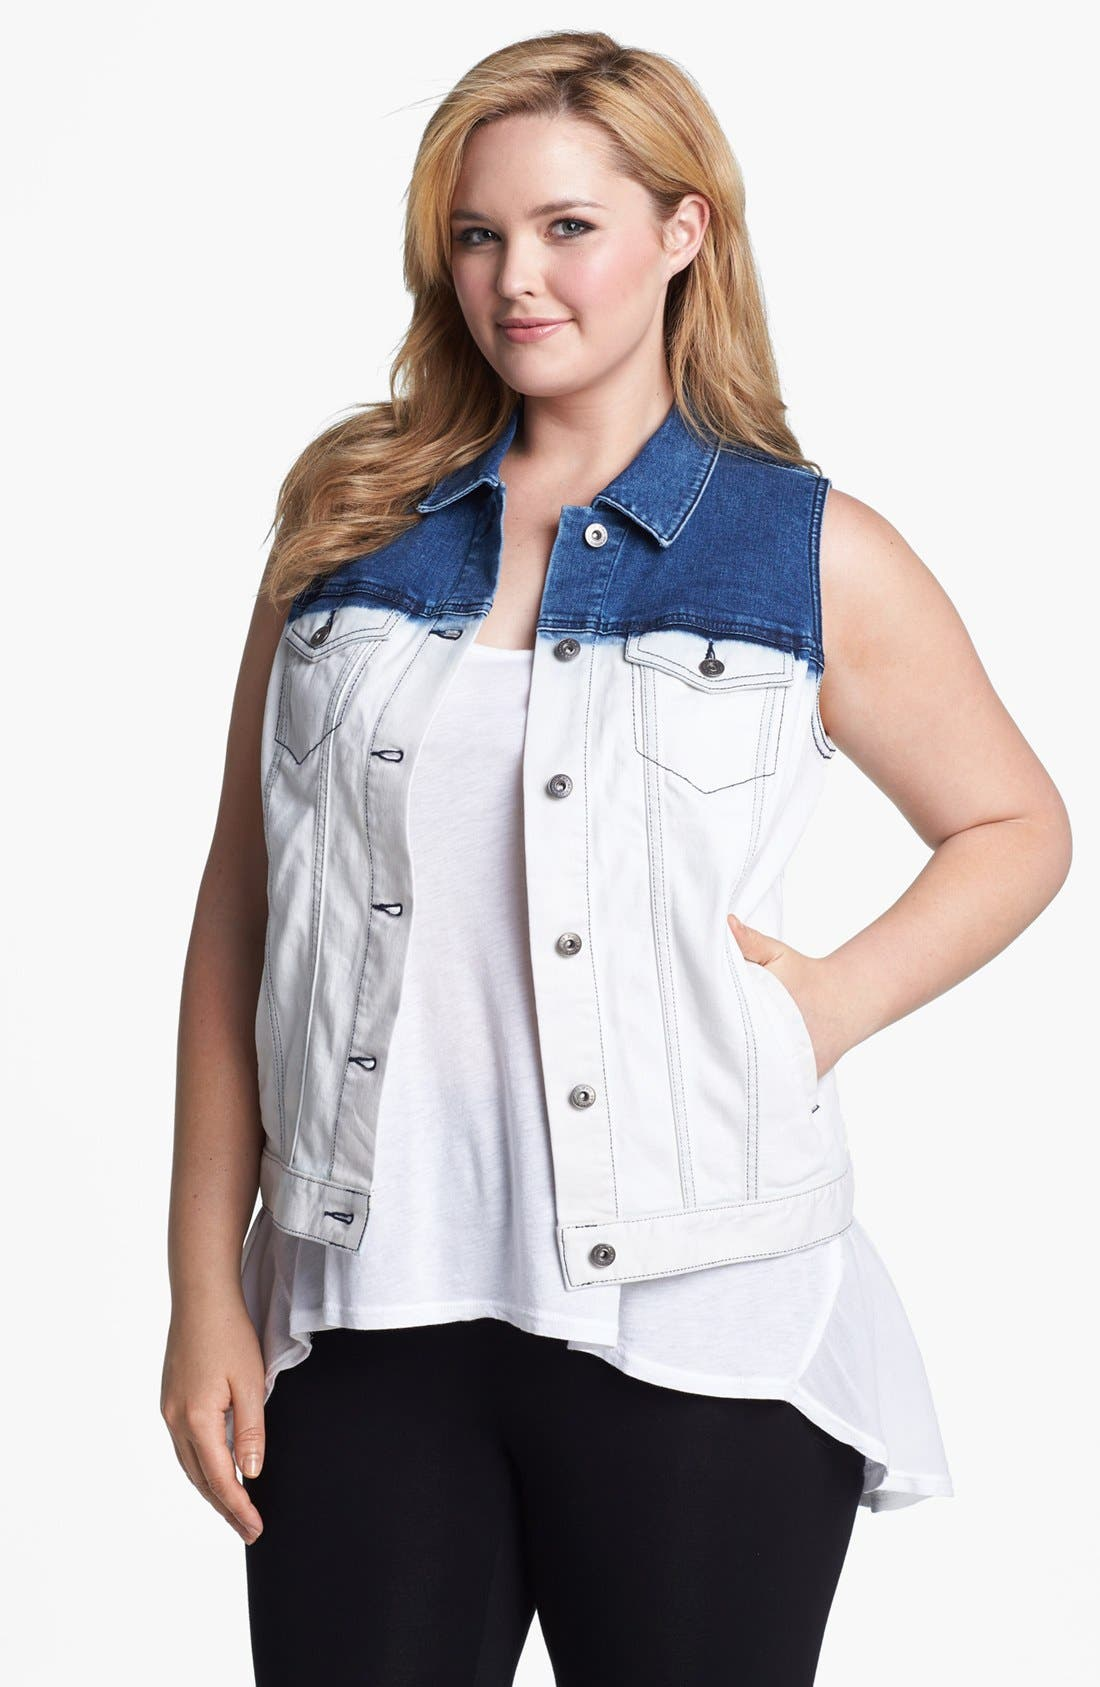 Alternate Image 1 Selected - Two by Vince Camuto Dip Dye Denim Vest (Plus Size)